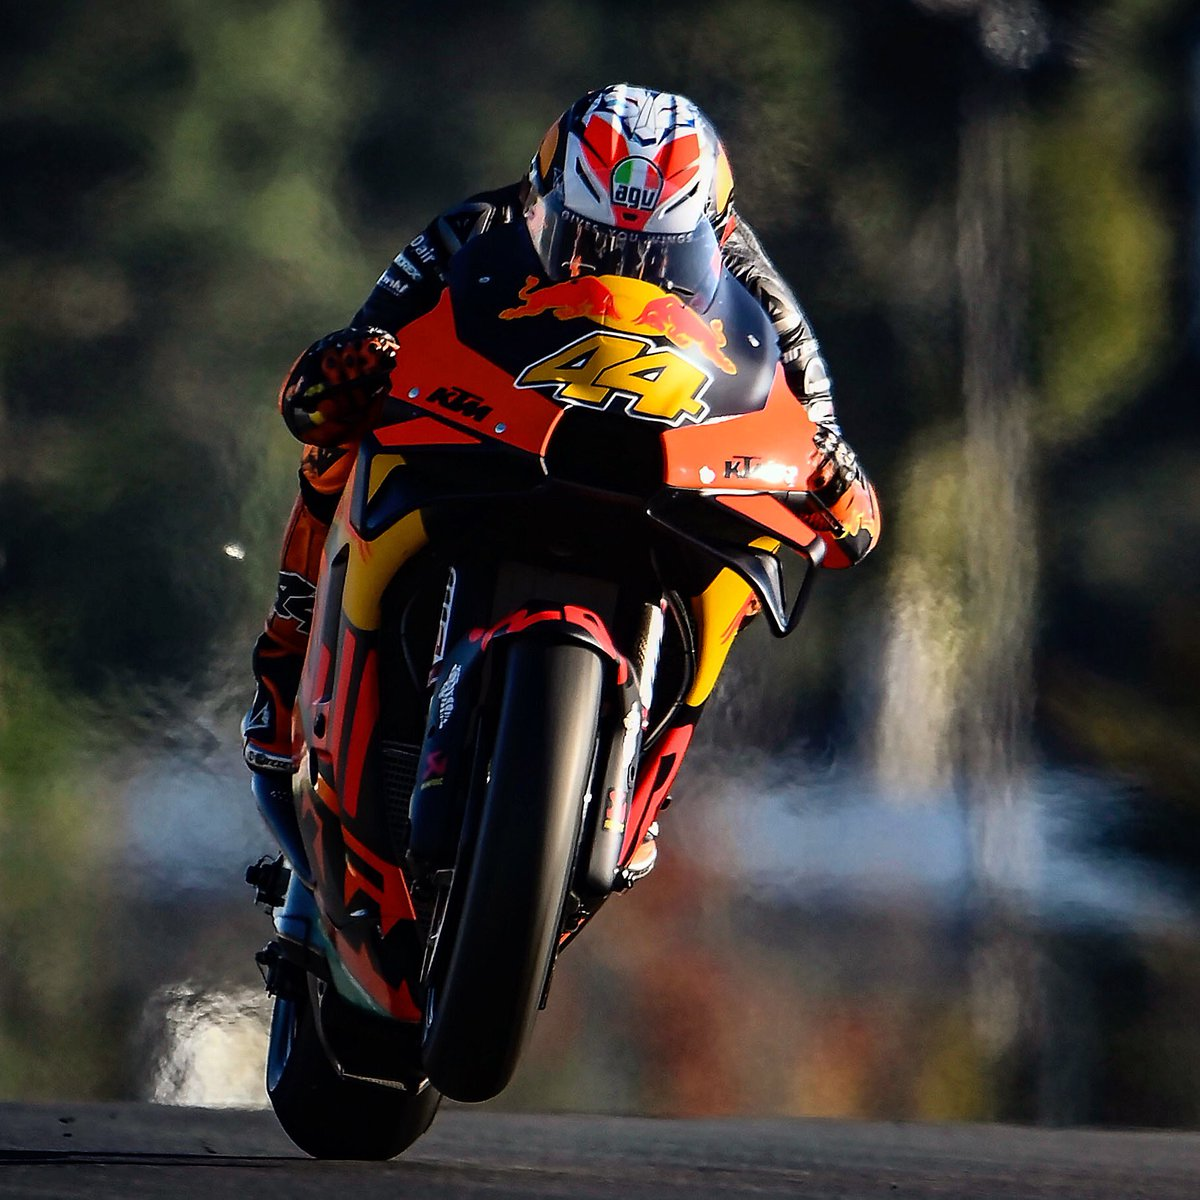 Autumnal light in Le Mans highlights Pol Espargaro on the KTM and with no heat haze at this time of year.  #motogp #frenchgp #lemans @polespargaro @KTM_Racing @nikonproeurope #nikon #d6 #polespargaro #ktm #redbull https://t.co/UmkhEwwzoh